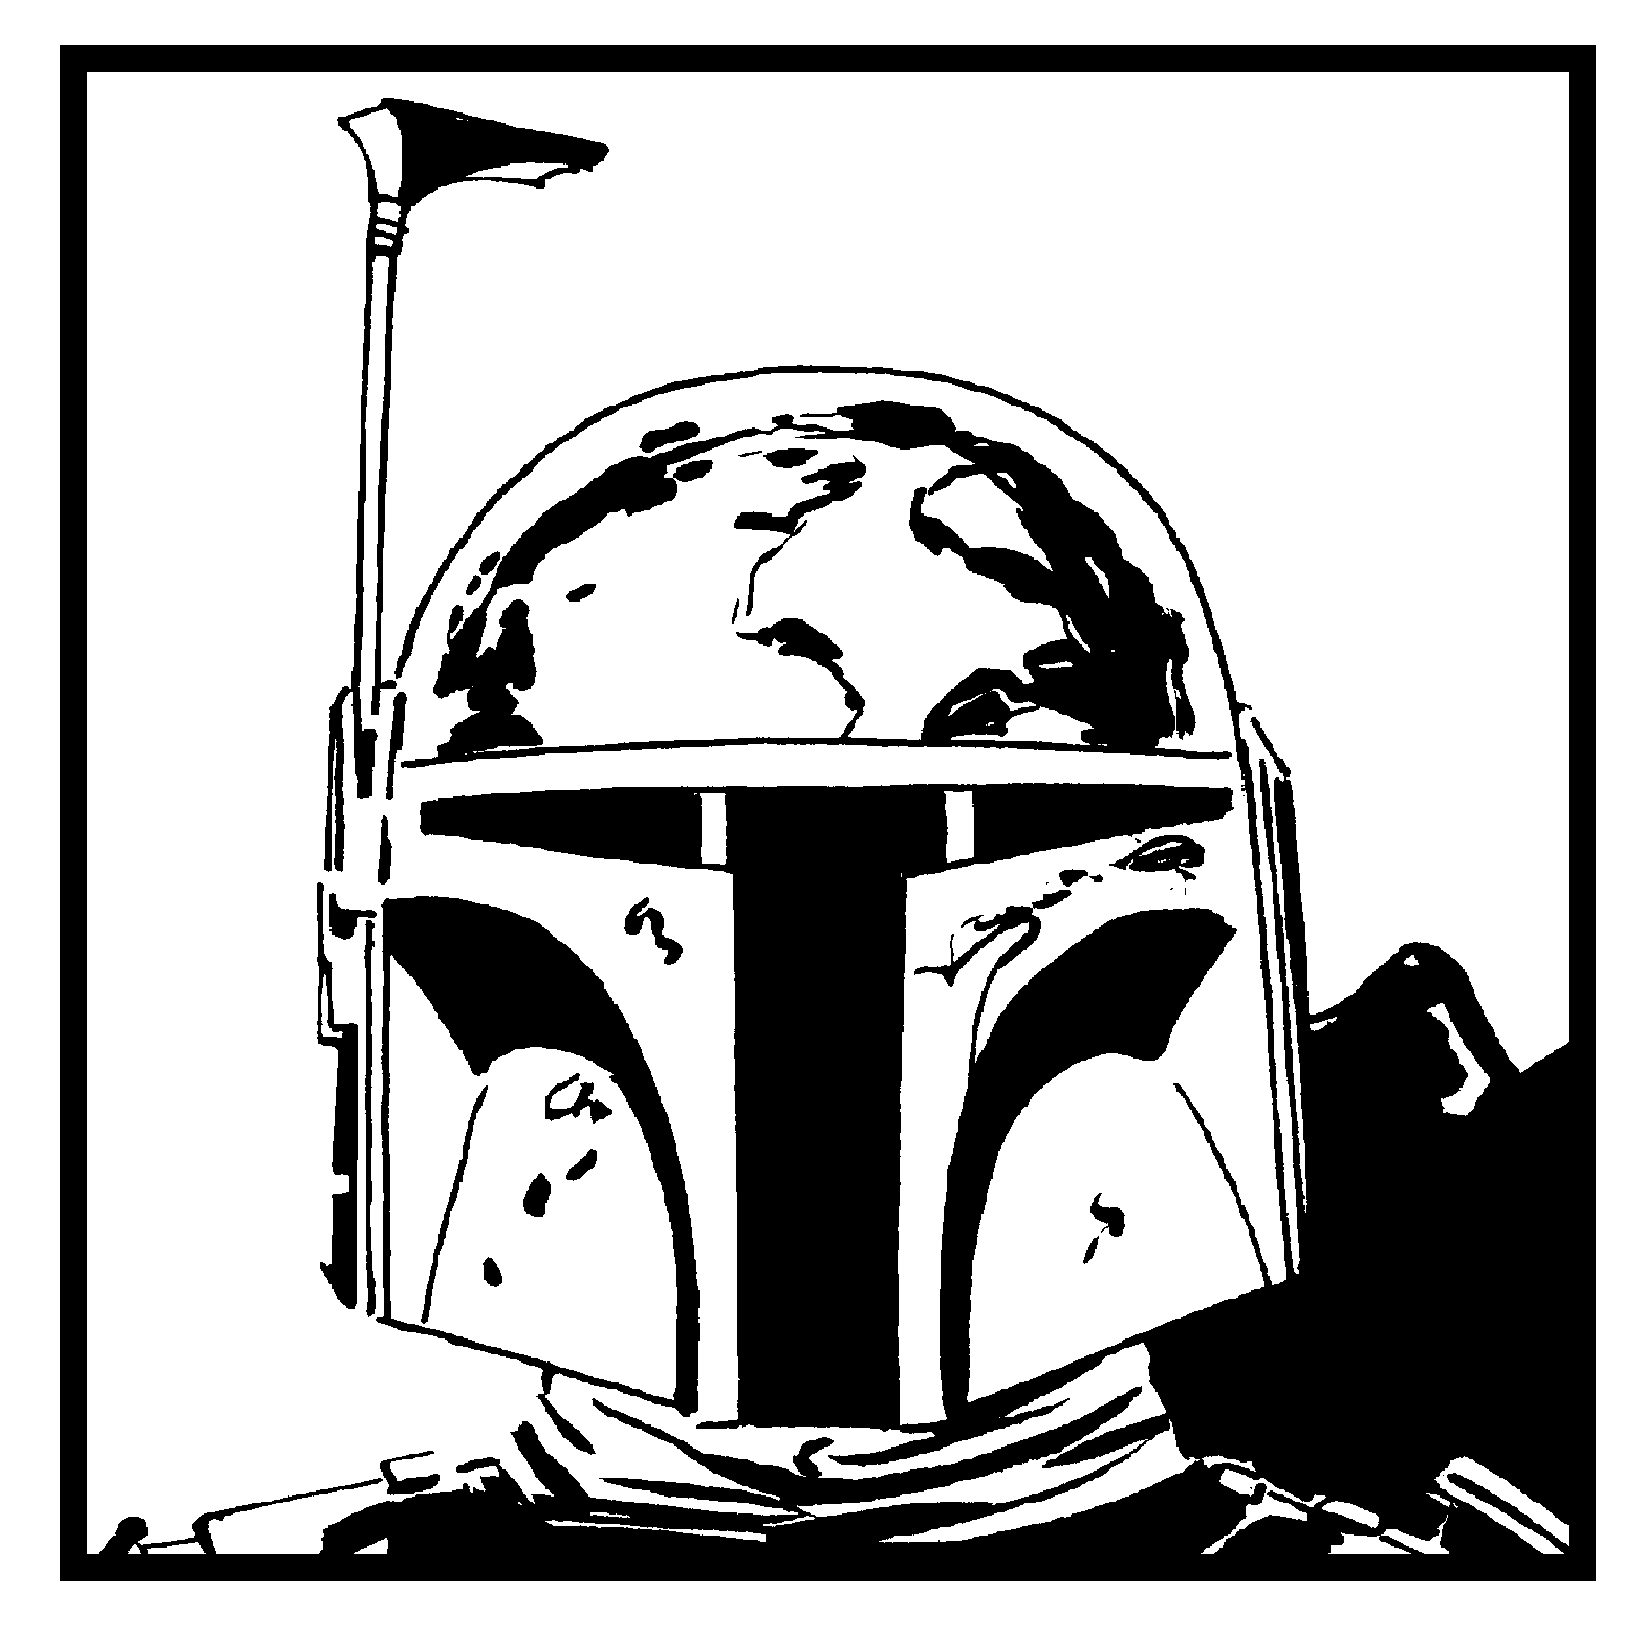 Plain Boba Fett picture?